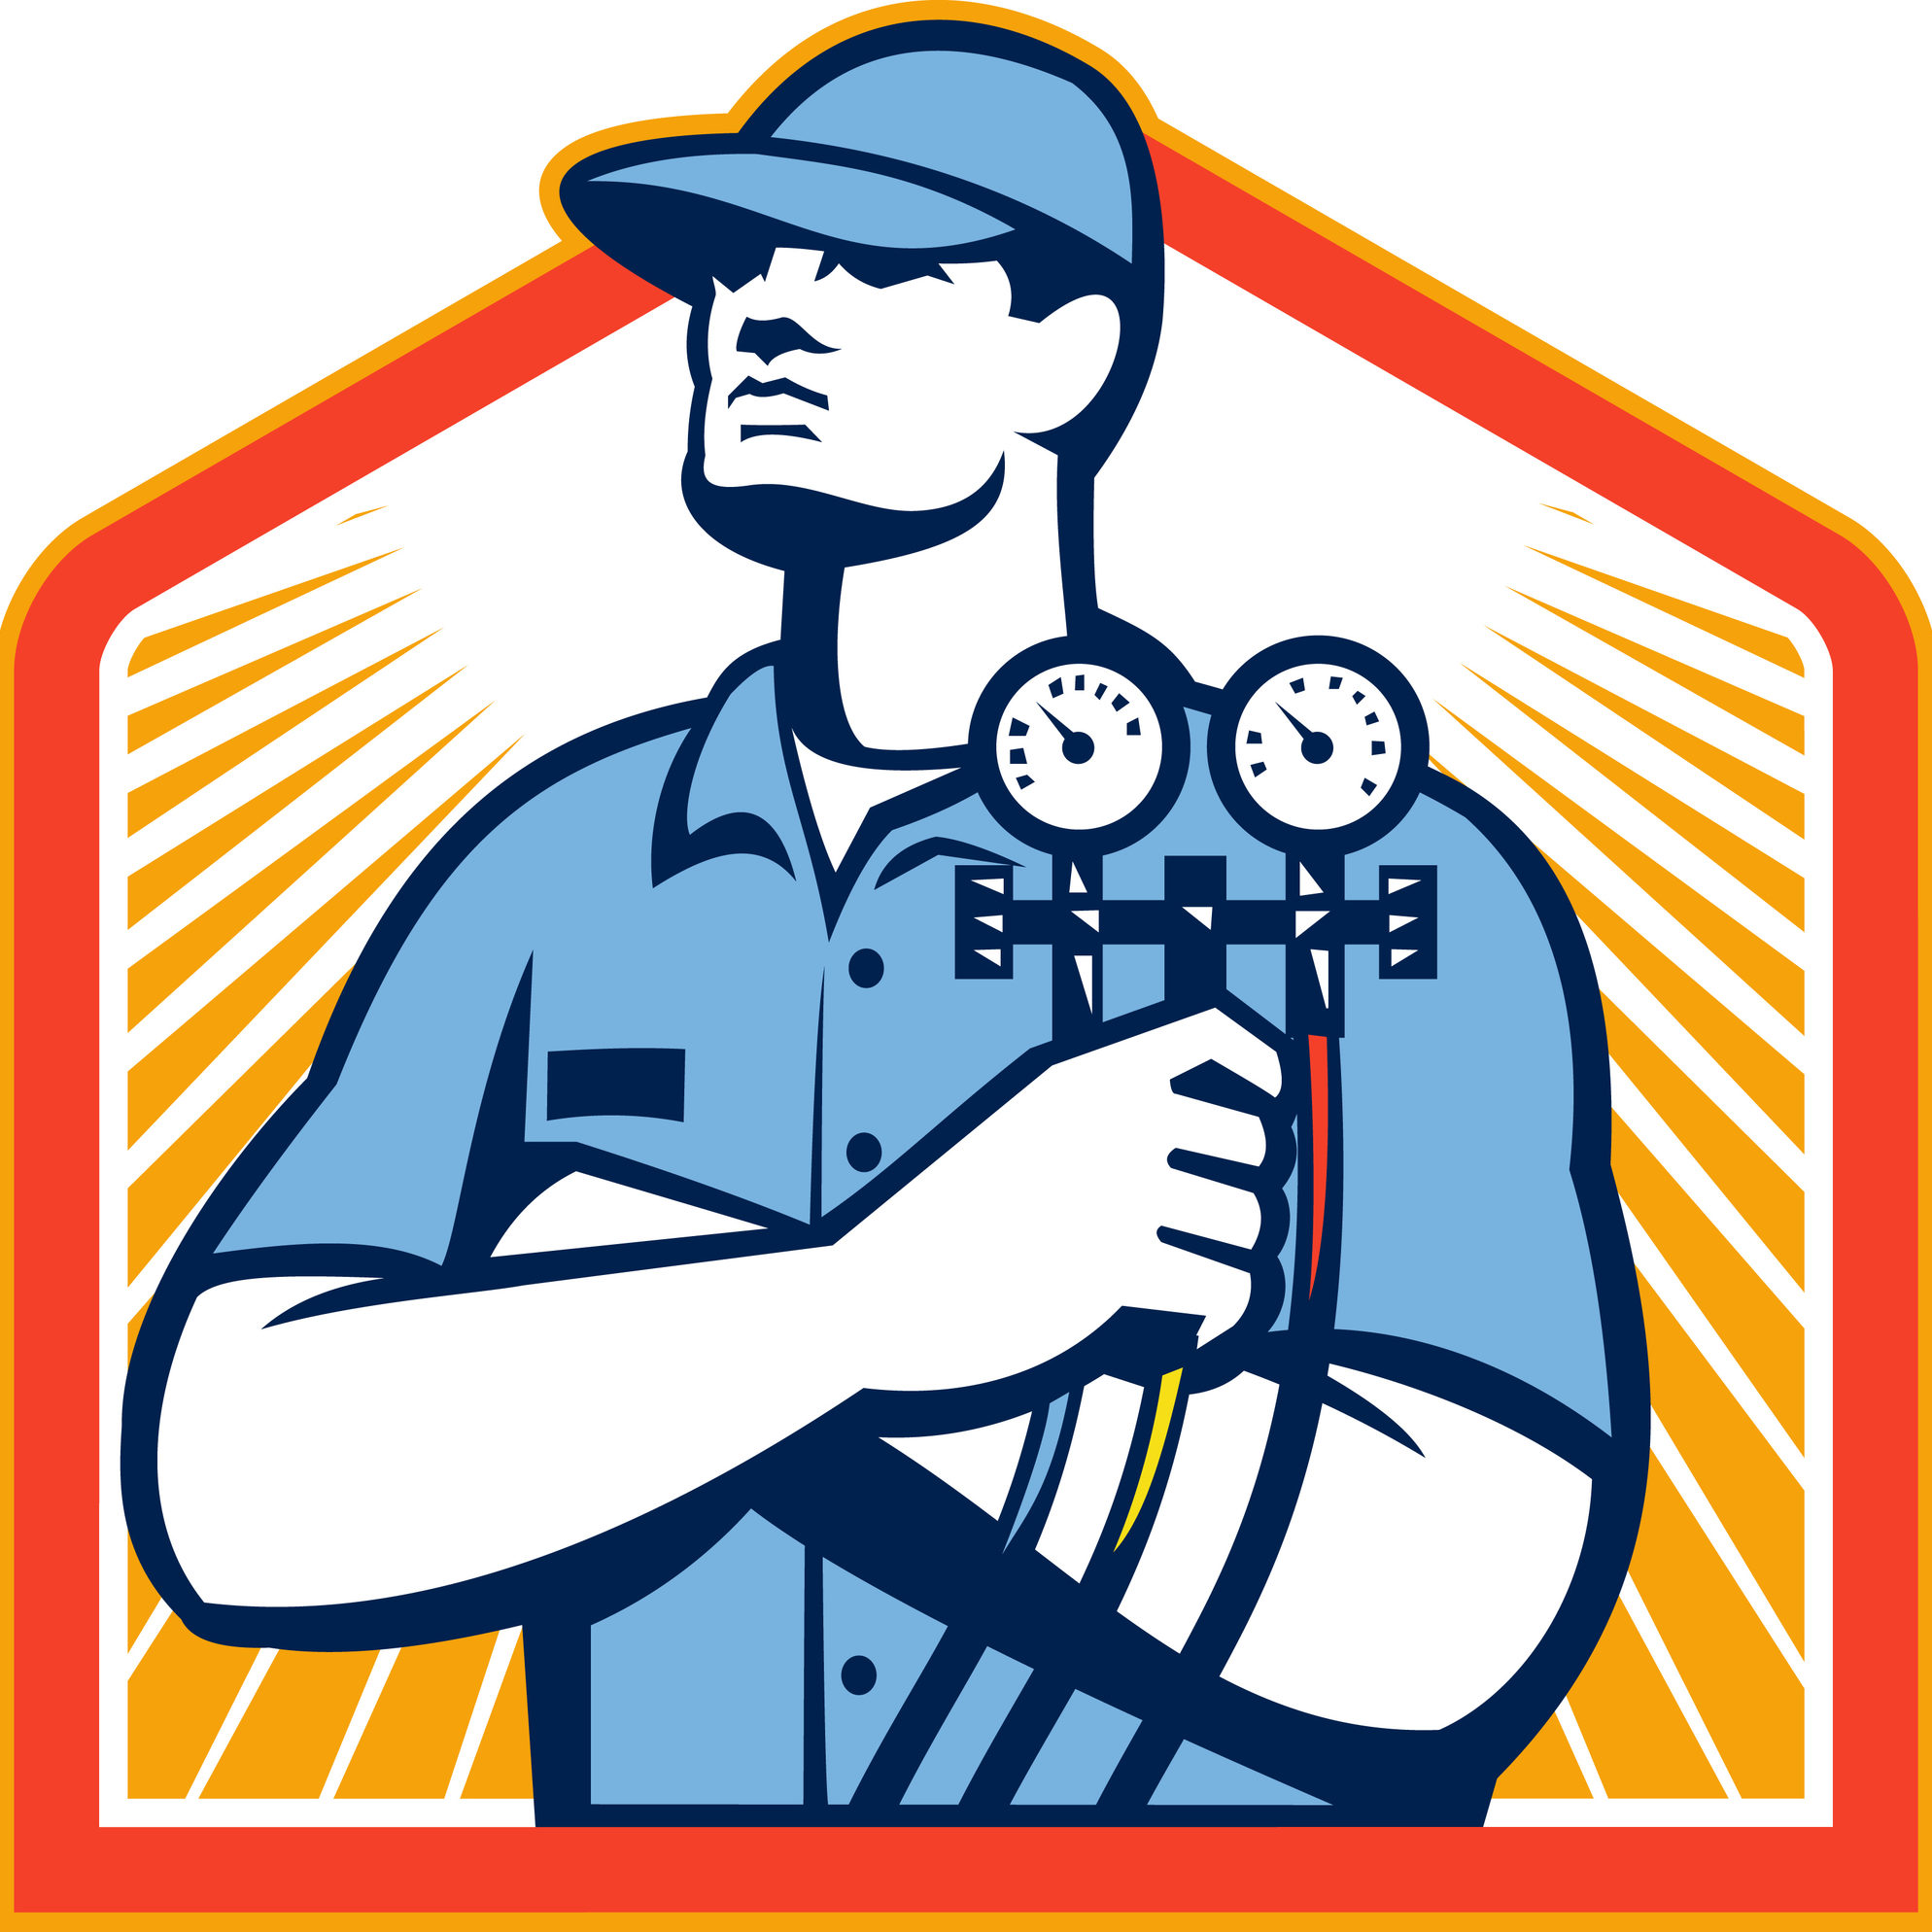 Illustration of a refrigeration and air conditioning mechanic holding a pressure temperature gauge front view set inside shield on isolated on white background done in retro style